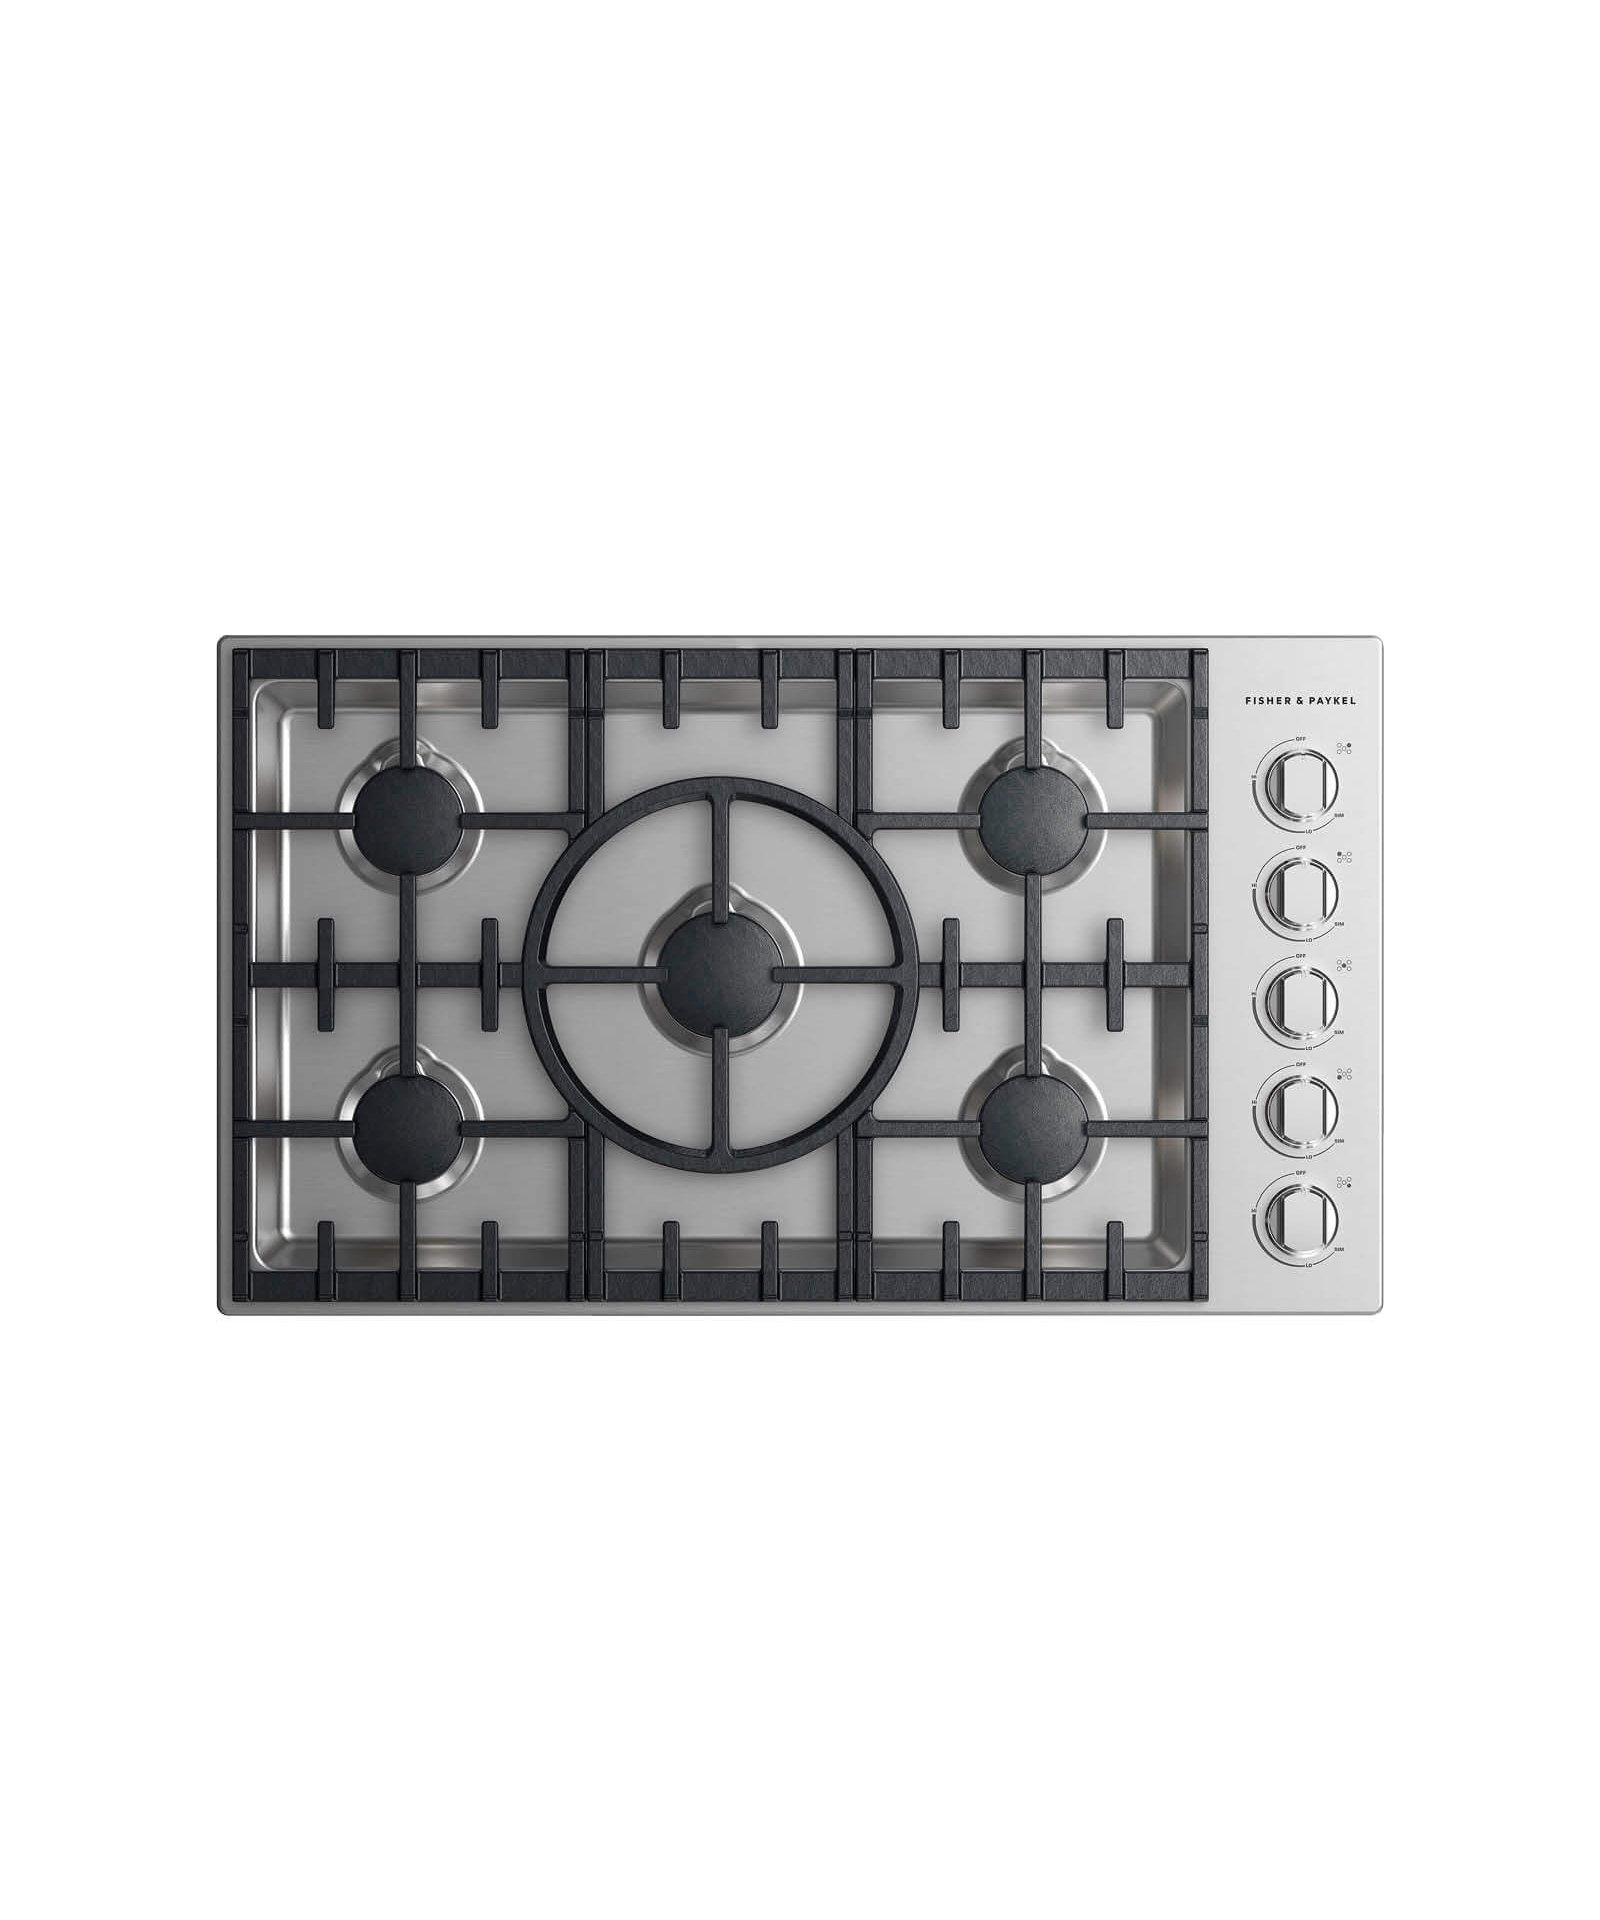 "Fisher and Paykel Gas Cooktop, 36"", 5 burner"